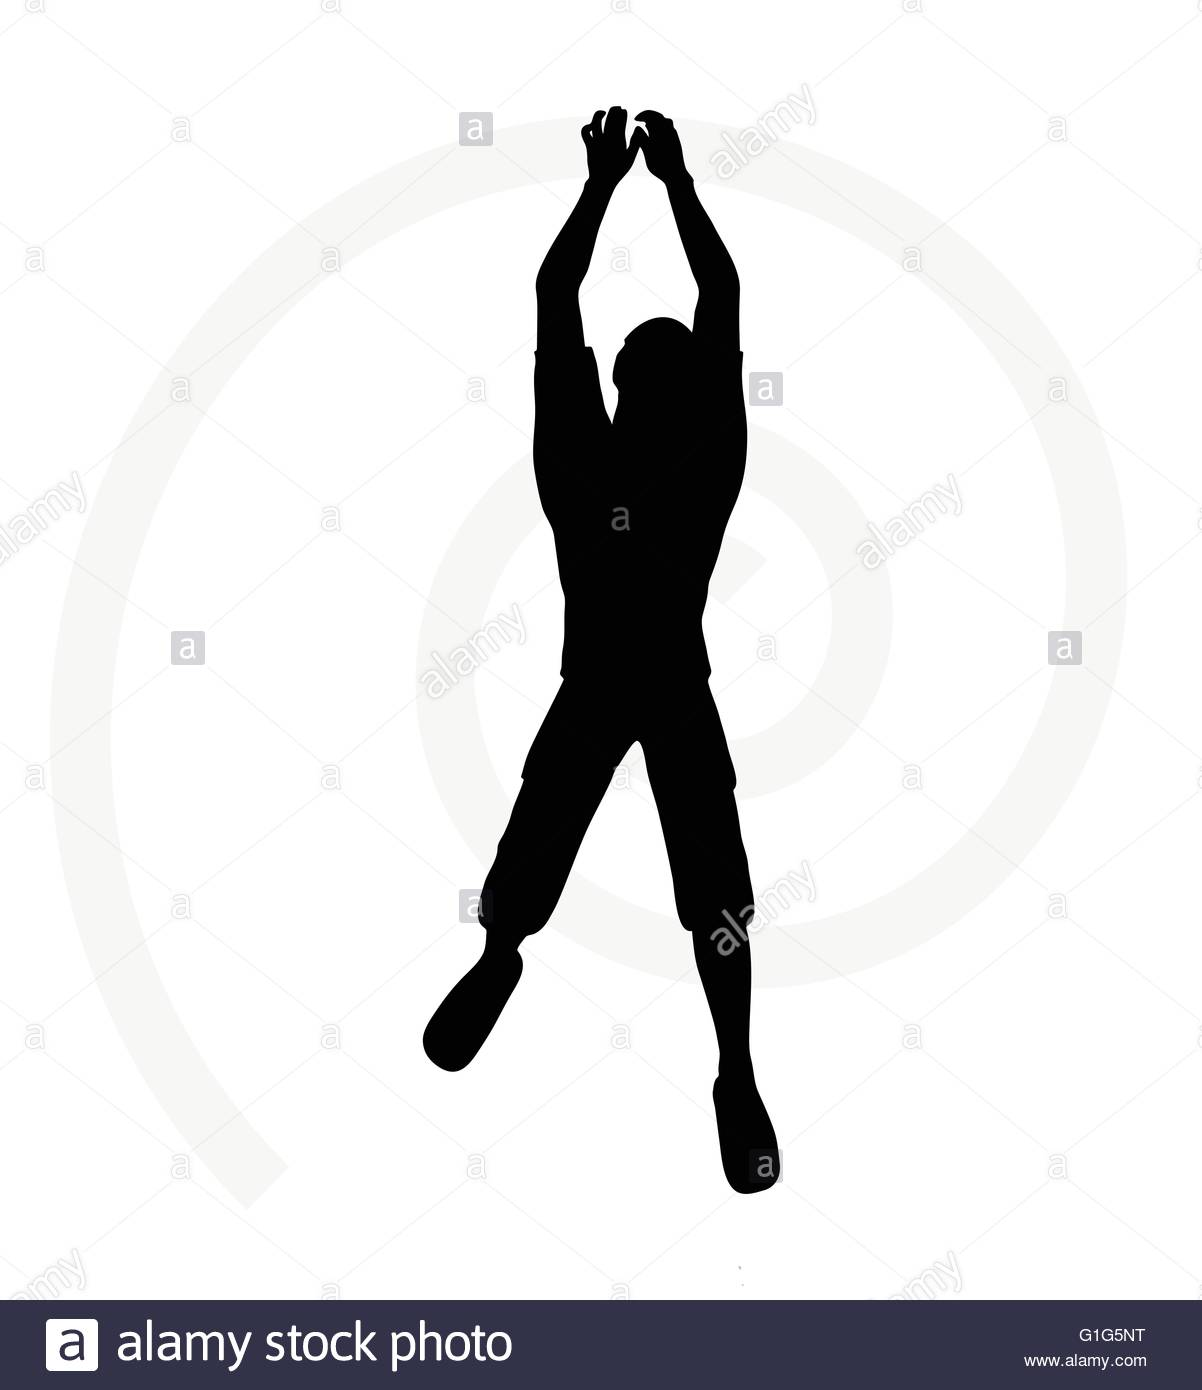 1202x1390 Man Silhouette Isolated On White Background